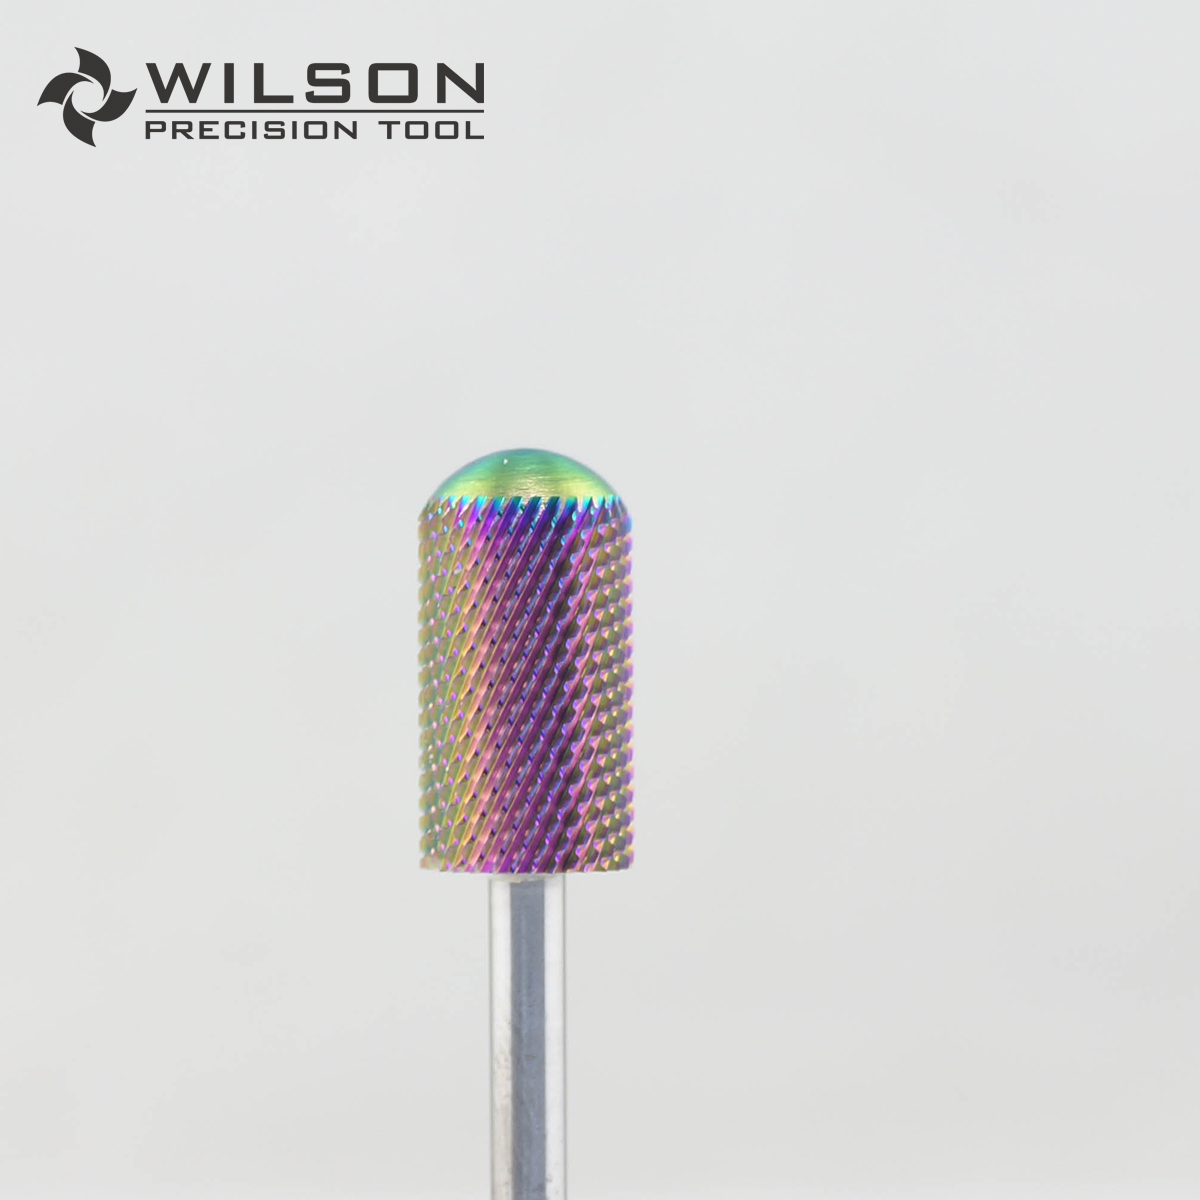 Rainbow Coating - Smooth Top - Carbide Nail Bits